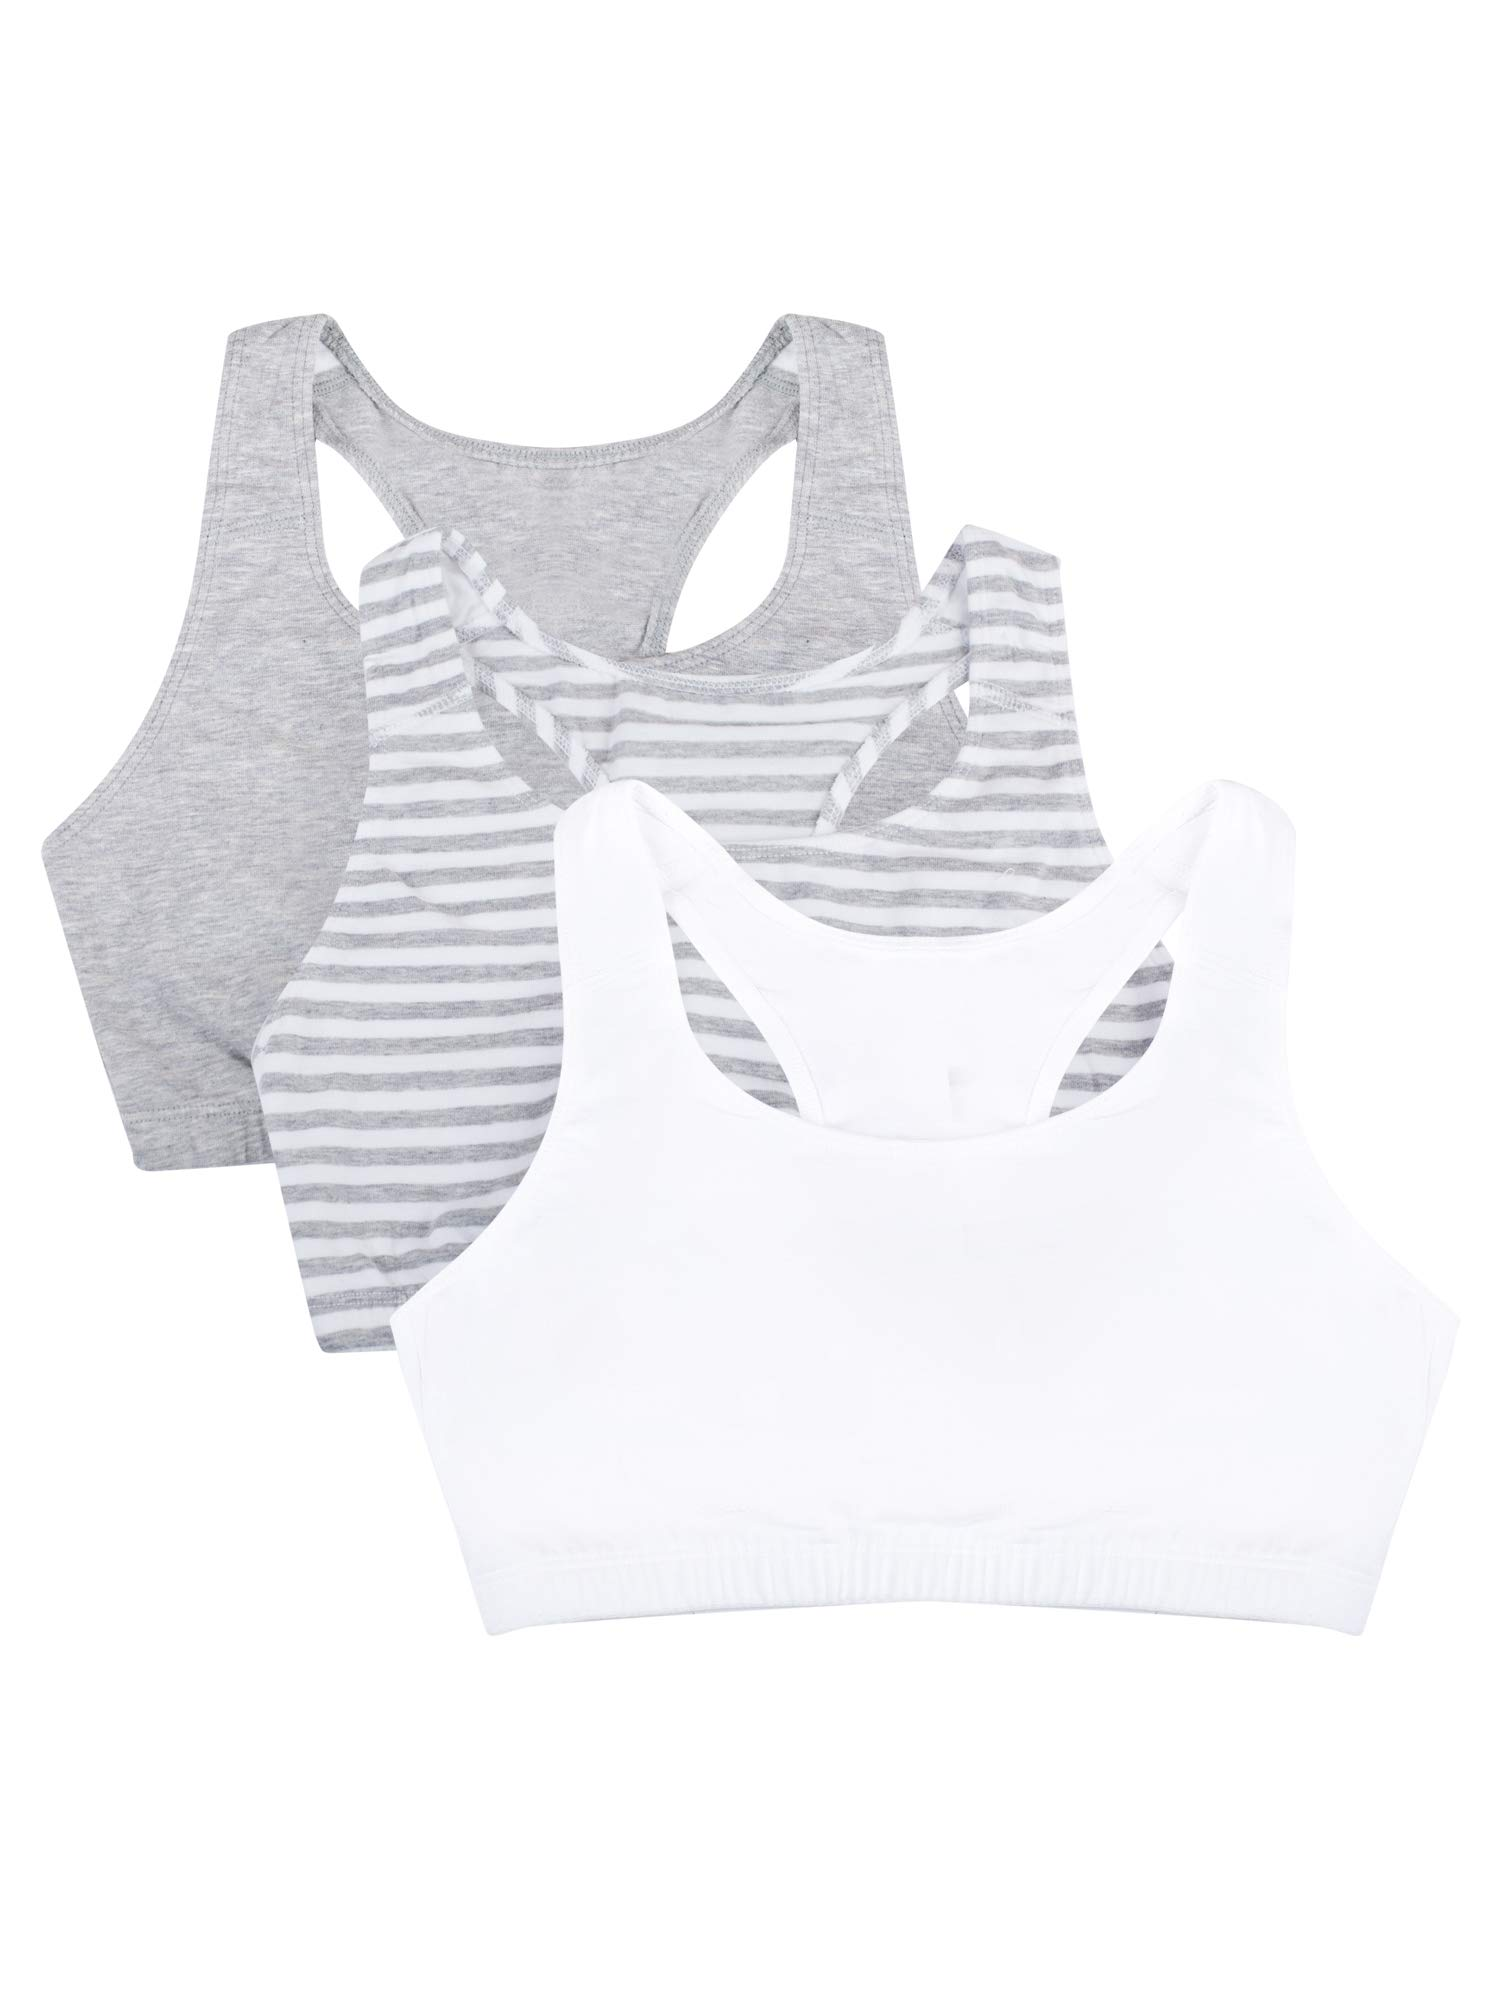 Fruit of the Loom Women's Built-Up Sports Bra 3 Pack Bra, Skinny Stripe/White/Heather Grey, 34